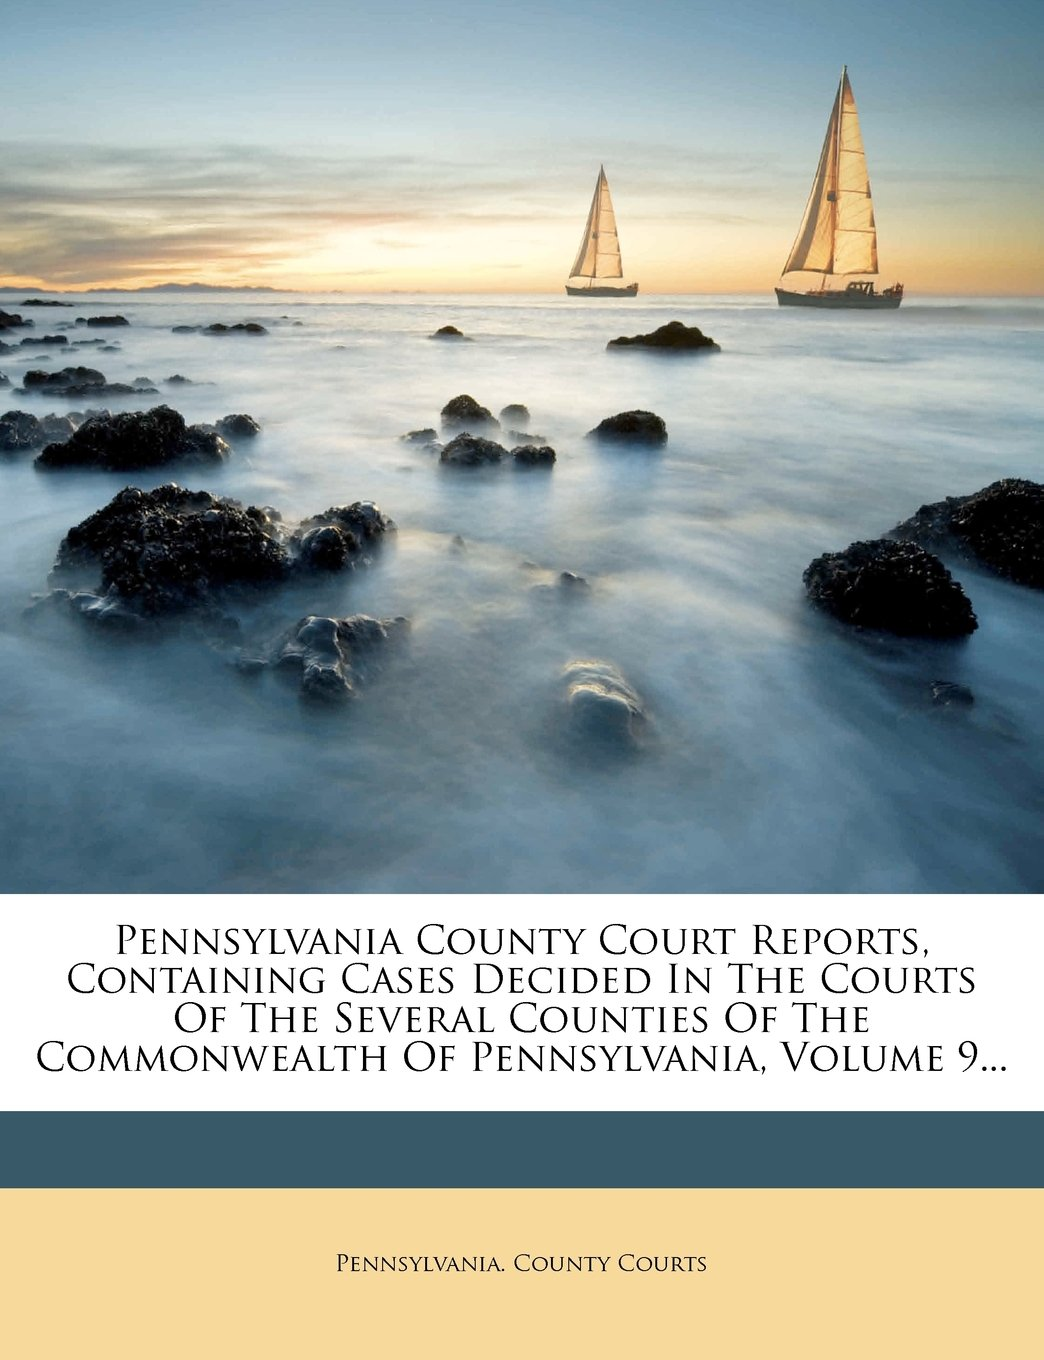 Pennsylvania County Court Reports, Containing Cases Decided in the Courts of the Several Counties of the Commonwealth of Pennsylvania, Volume 9... pdf